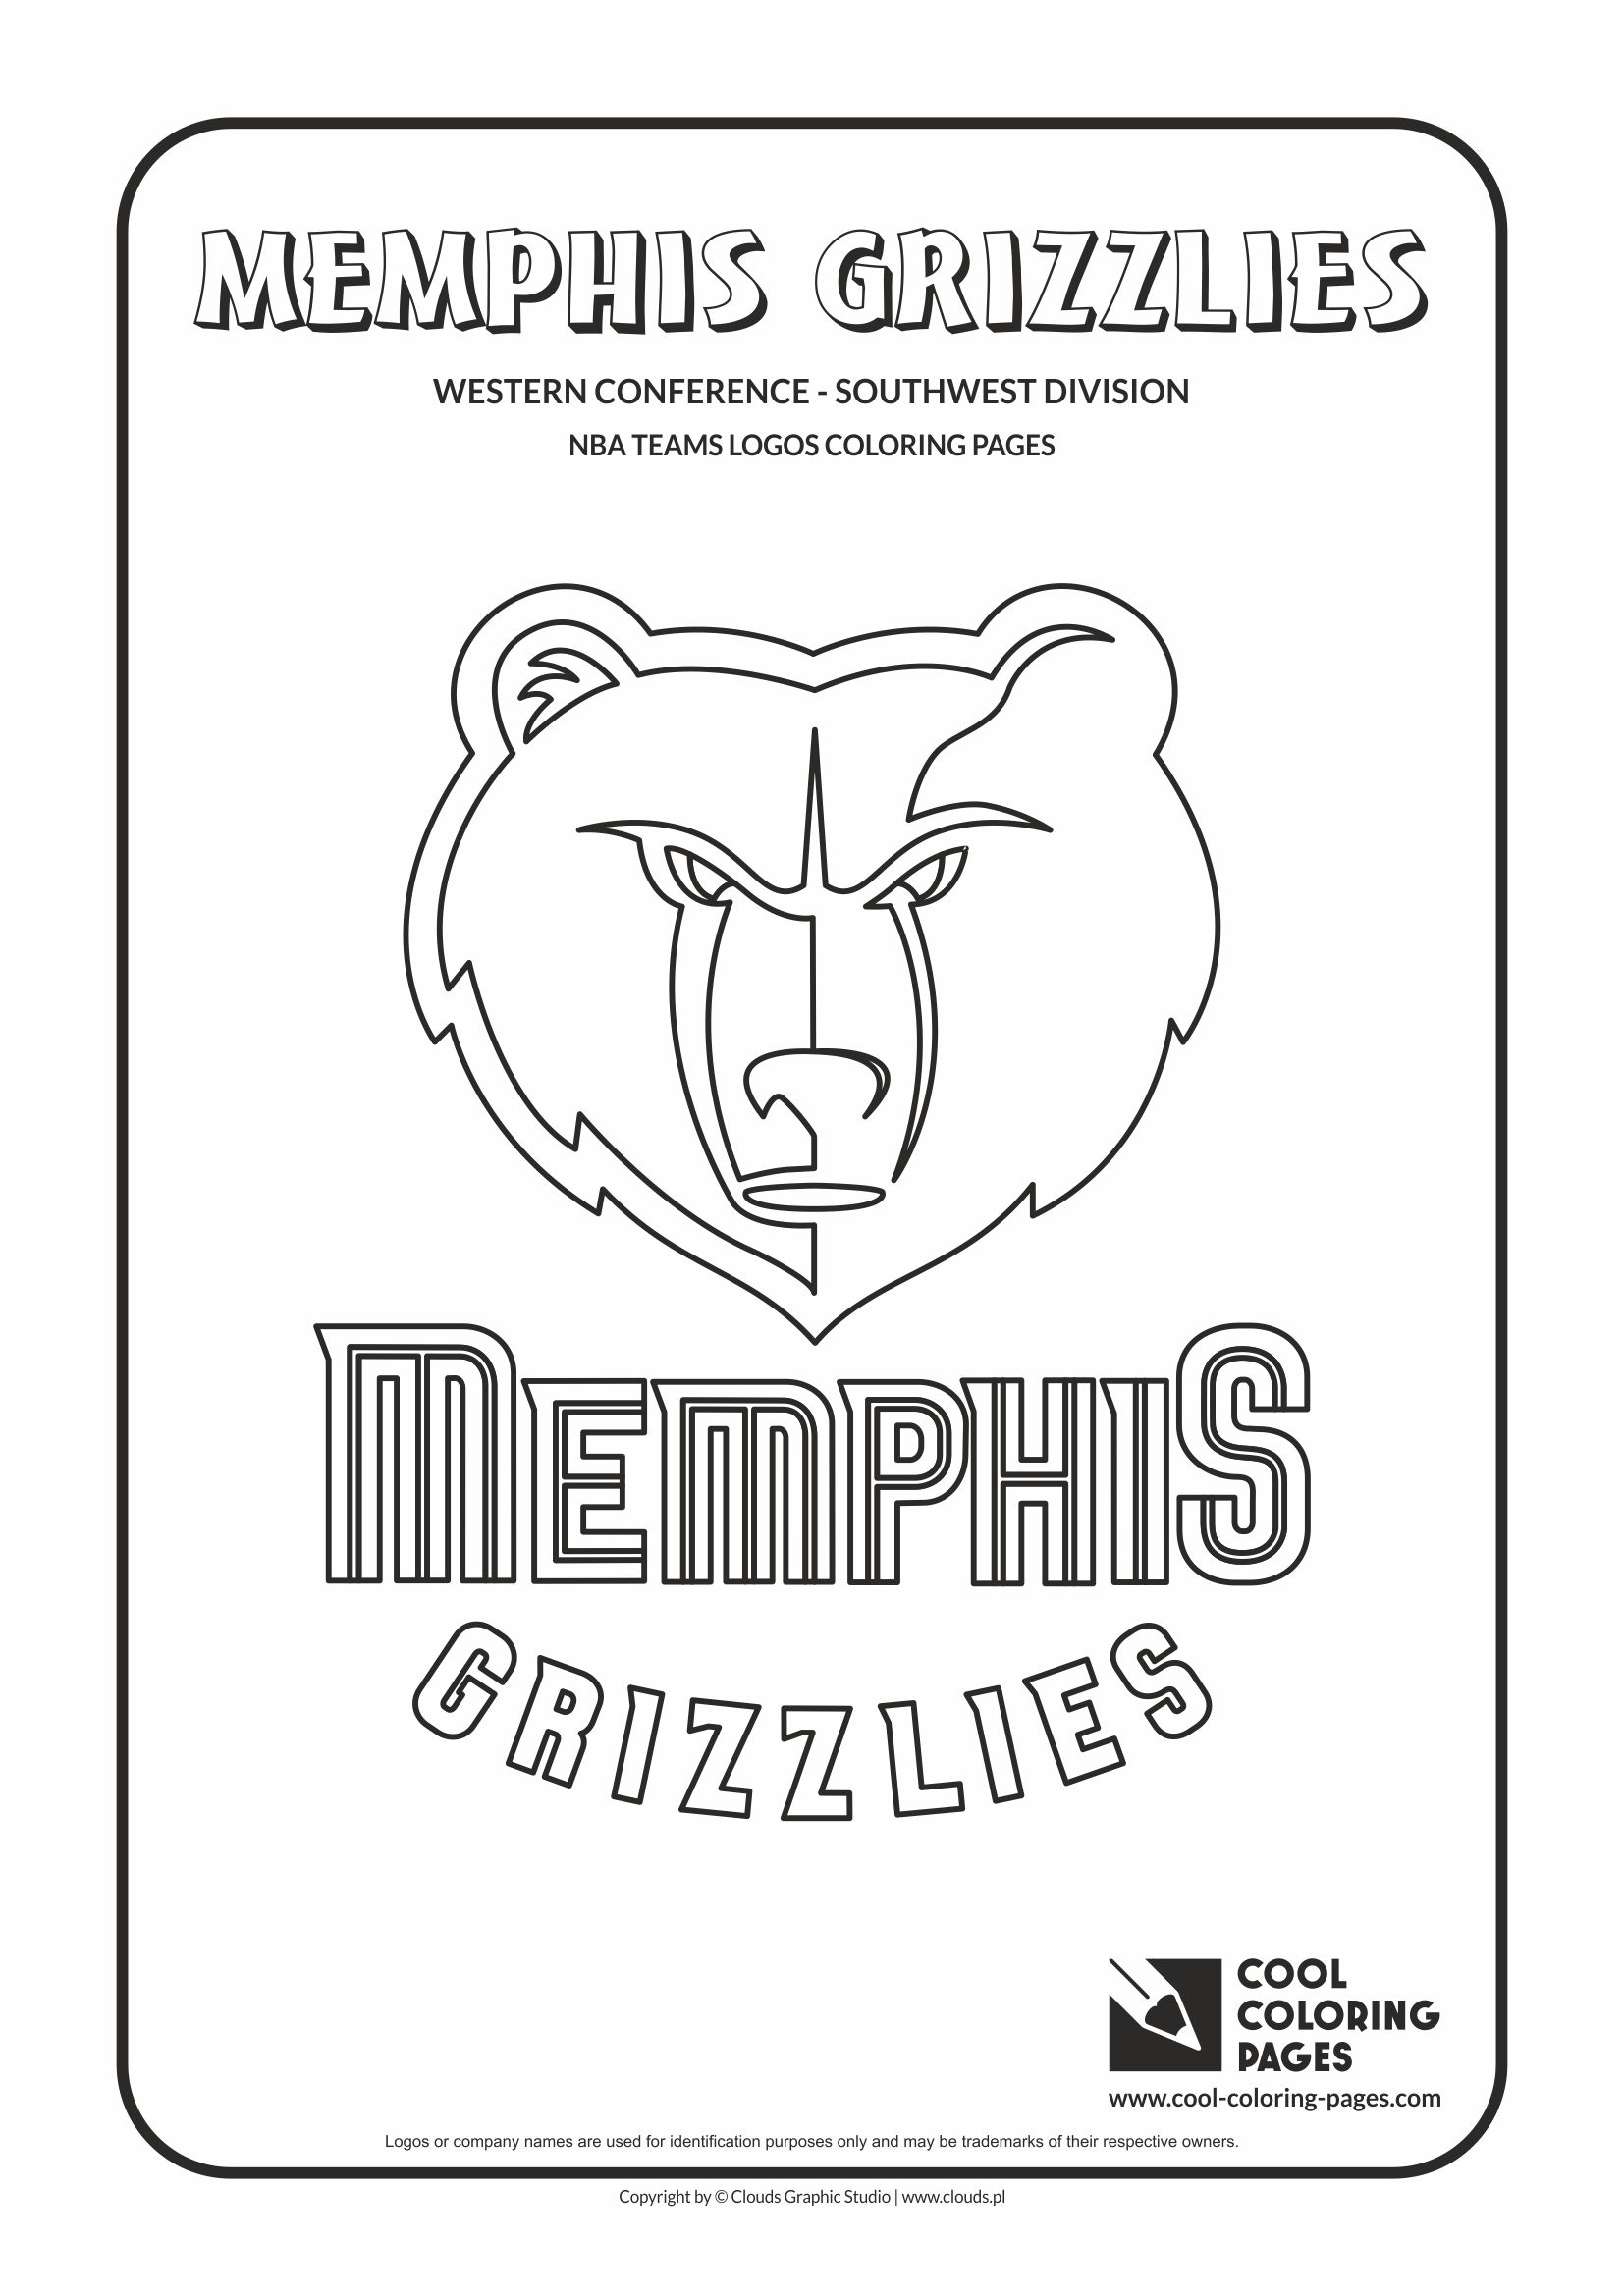 nba teams logos coloring pages cool coloring pages